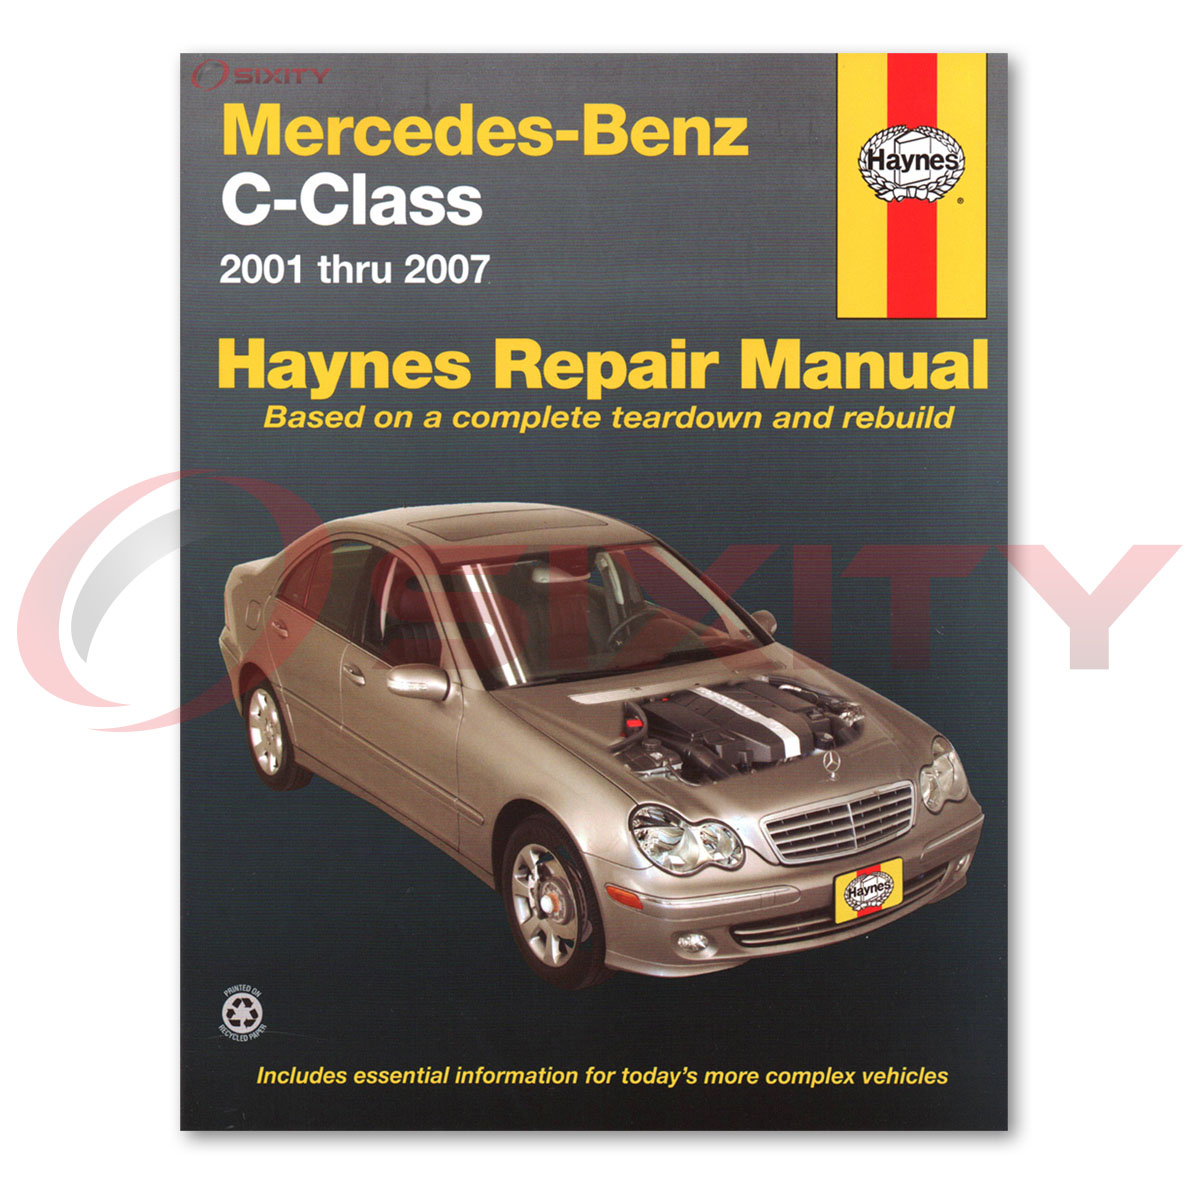 Air conditioning repair new mercedes benz air conditioning repair mercedes benz air conditioning repair pictures fandeluxe Gallery